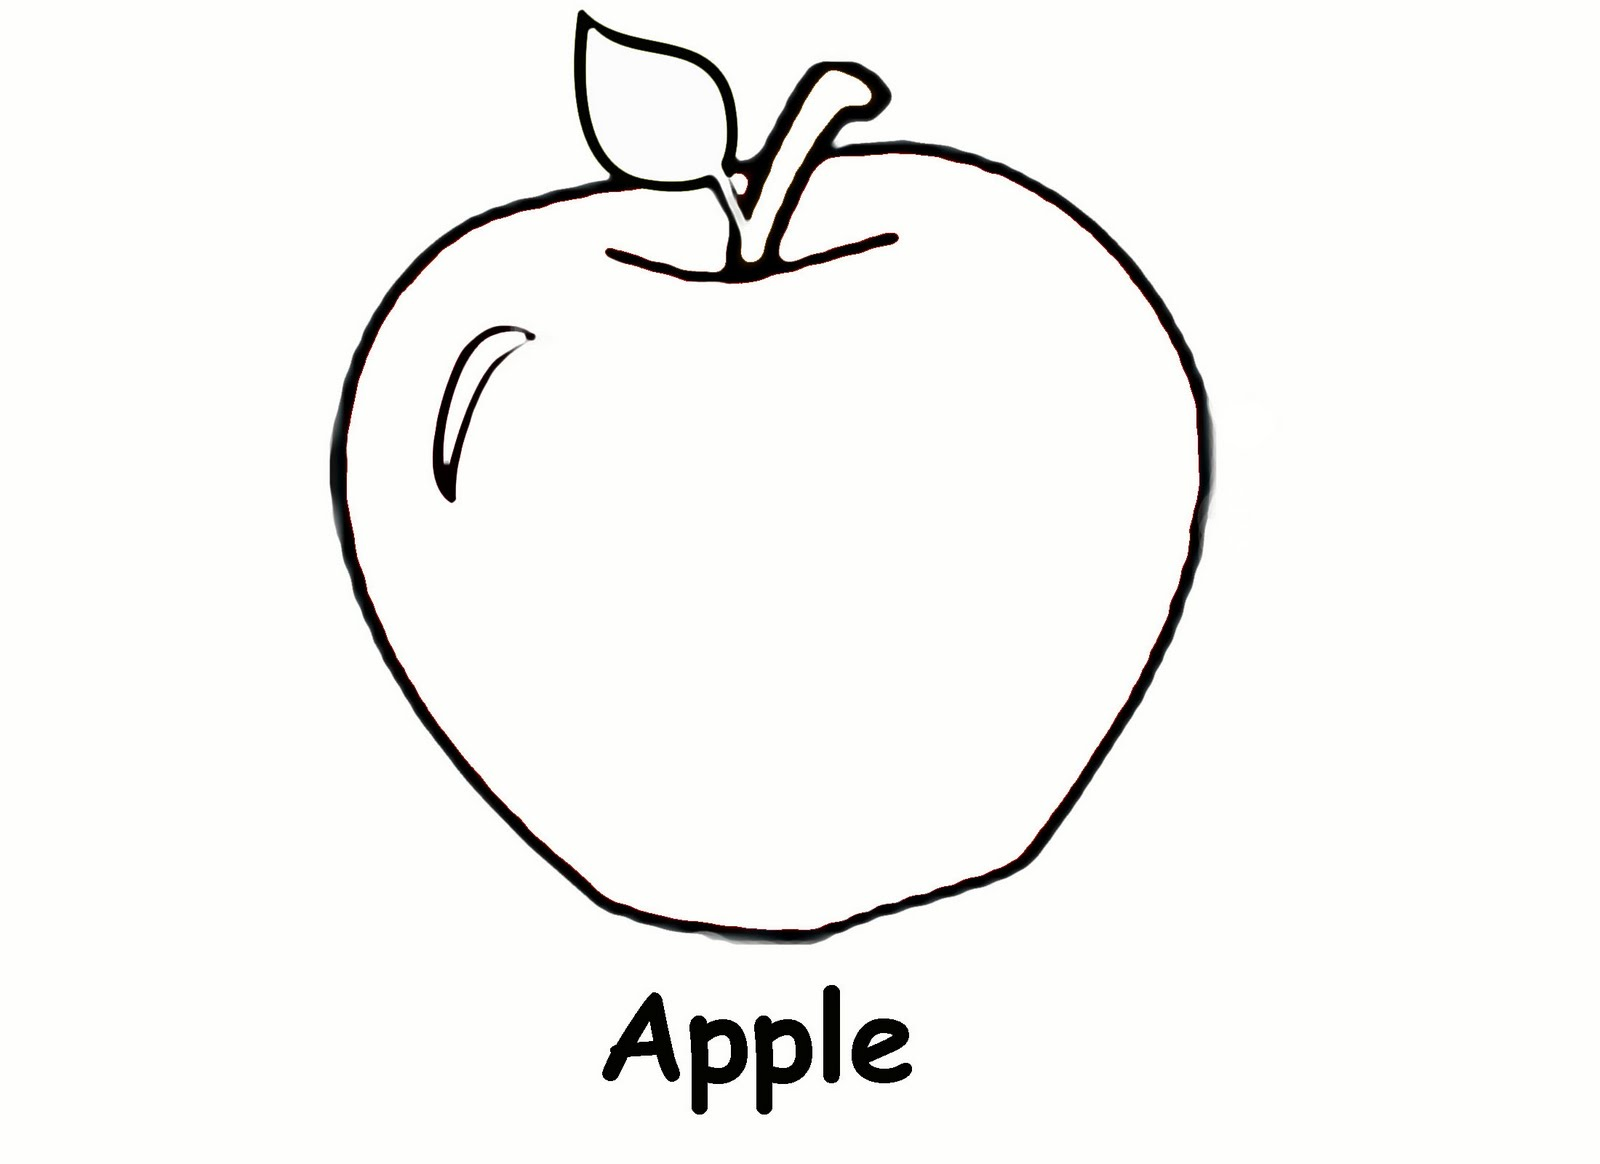 Sidther Free Printable Preschool Level Coloring Pages Free Apple Coloring Pages